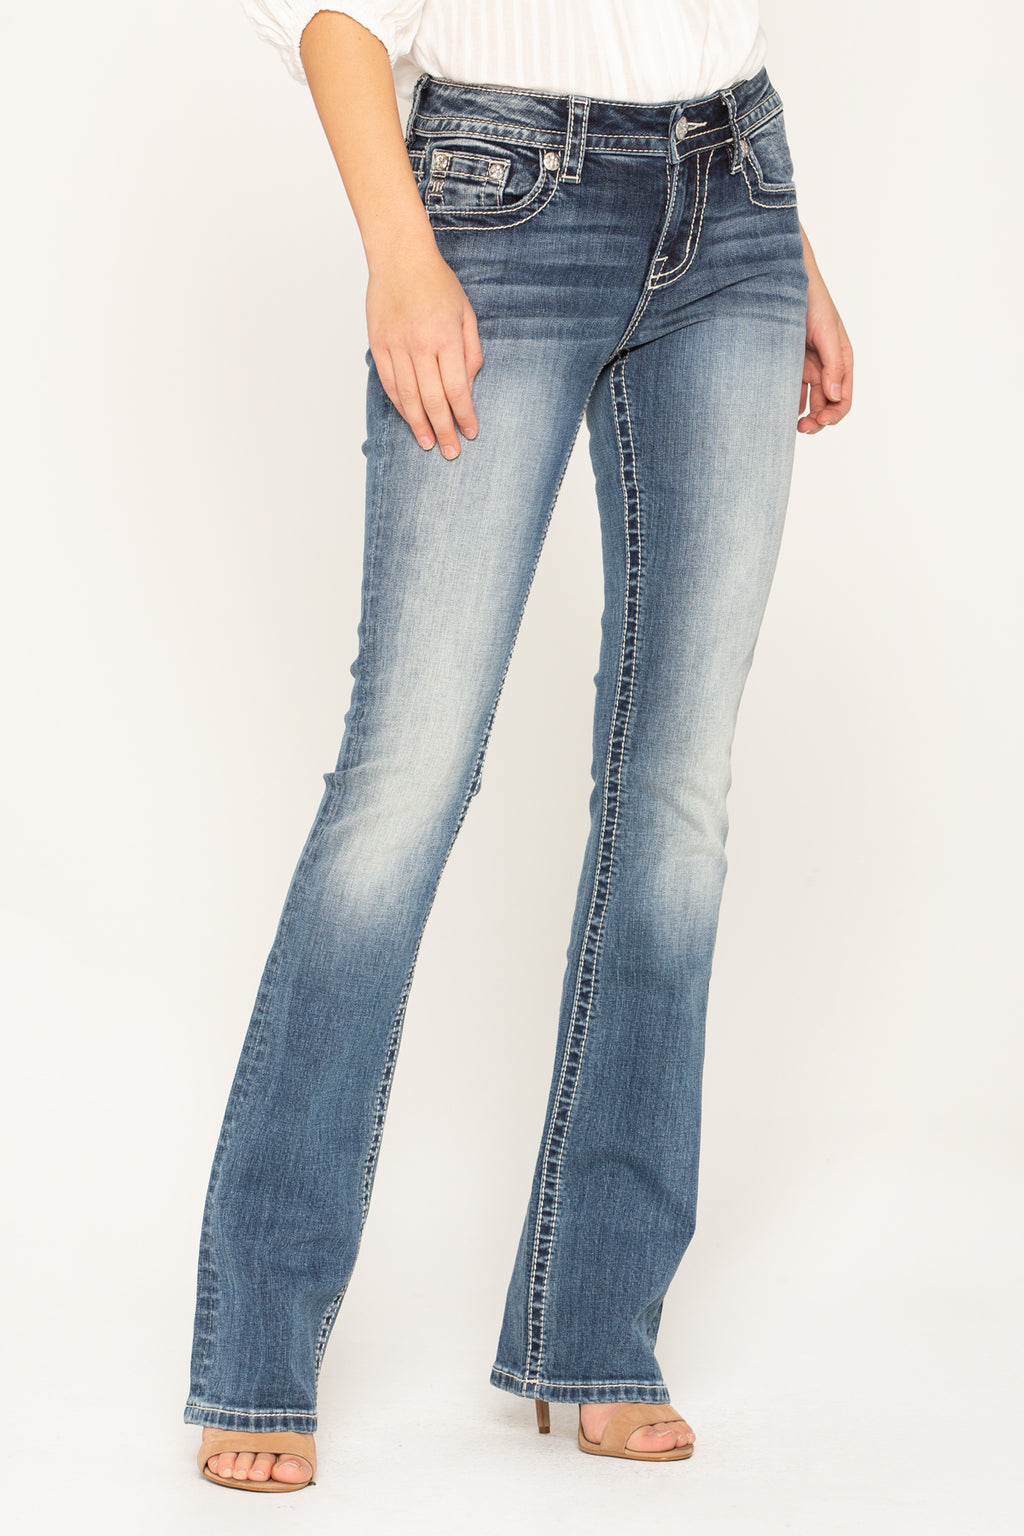 de7a39b5f24 WAY TO MY HEART BOOTCUT JEANS - front